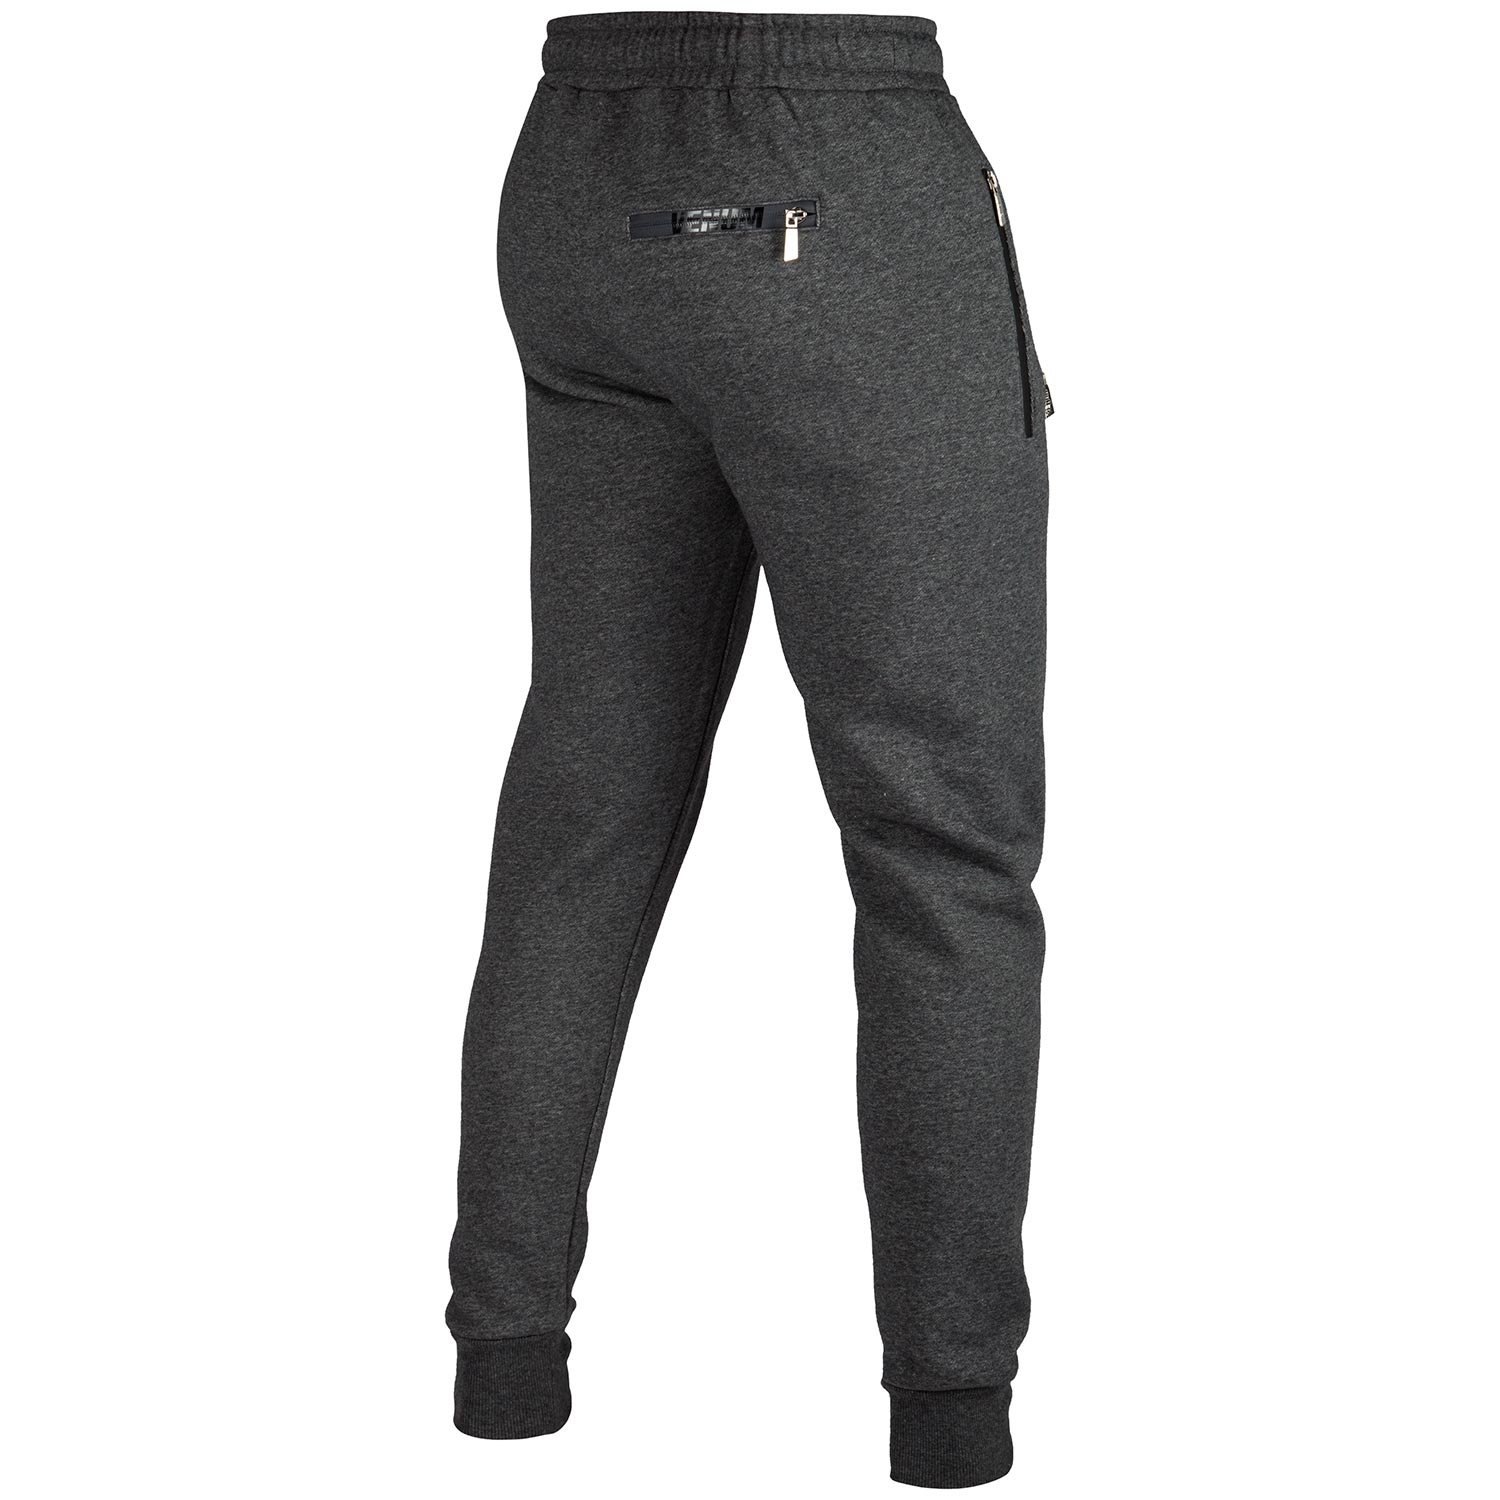 Venum Contender 2.0 Jogging Pants - Grey/Black - Medium by Venum (Image #3)